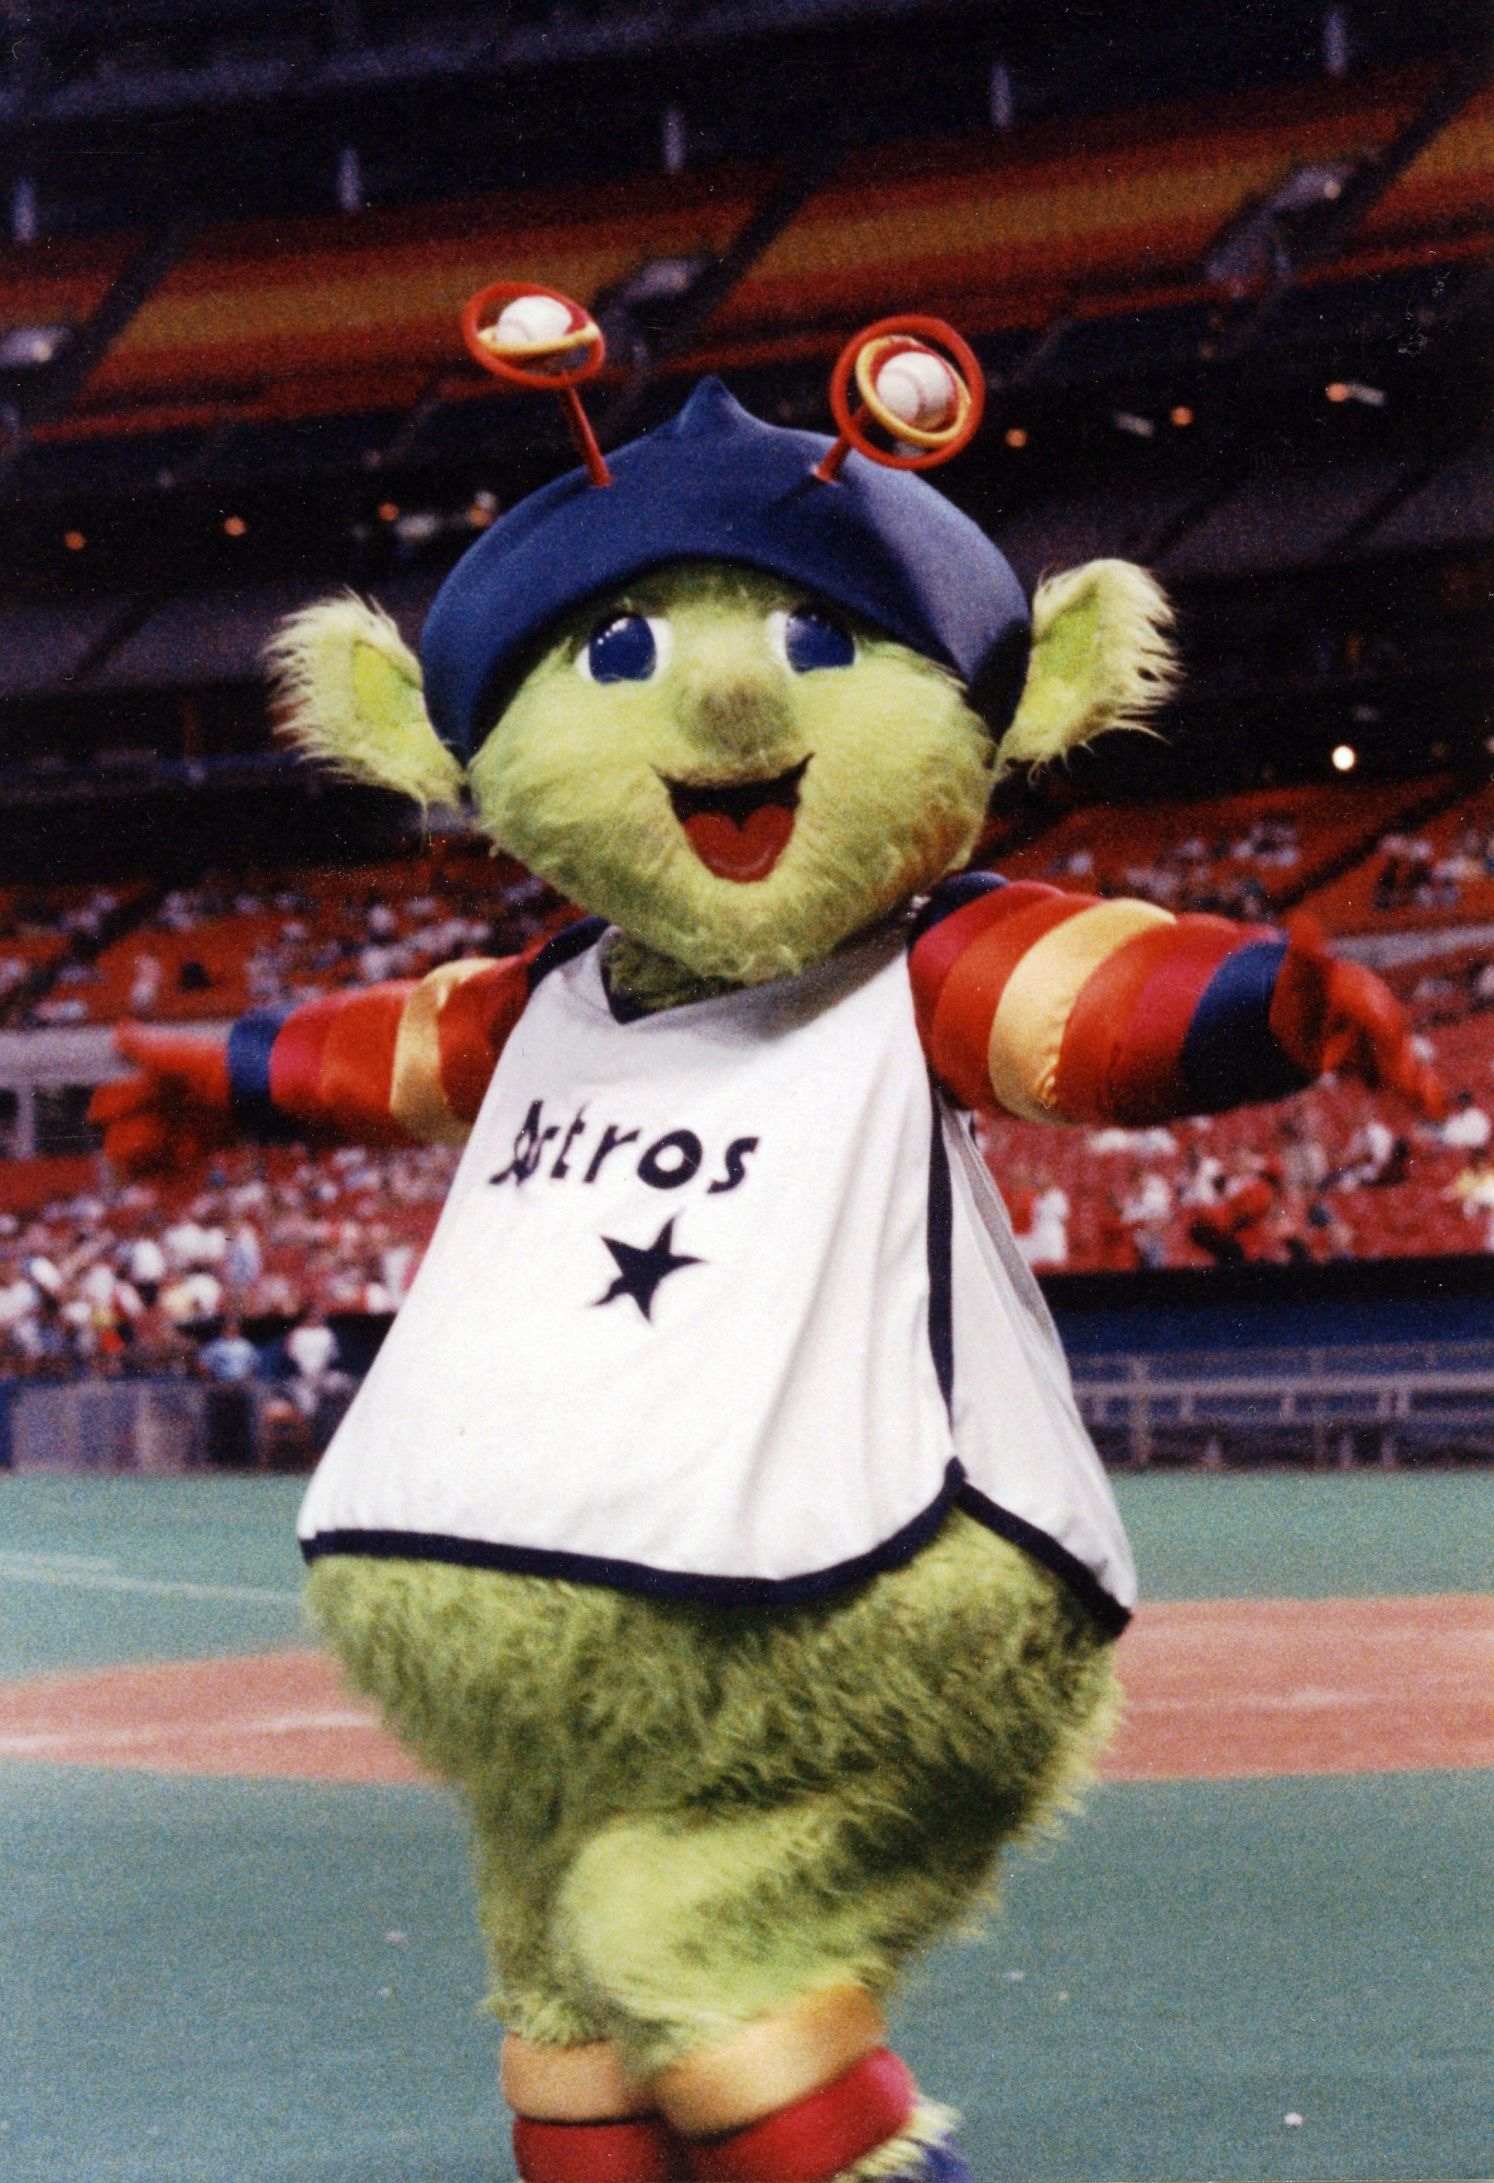 Astros Mascot >> Astros Mascot Orbit I Don T Know About This I Kinda